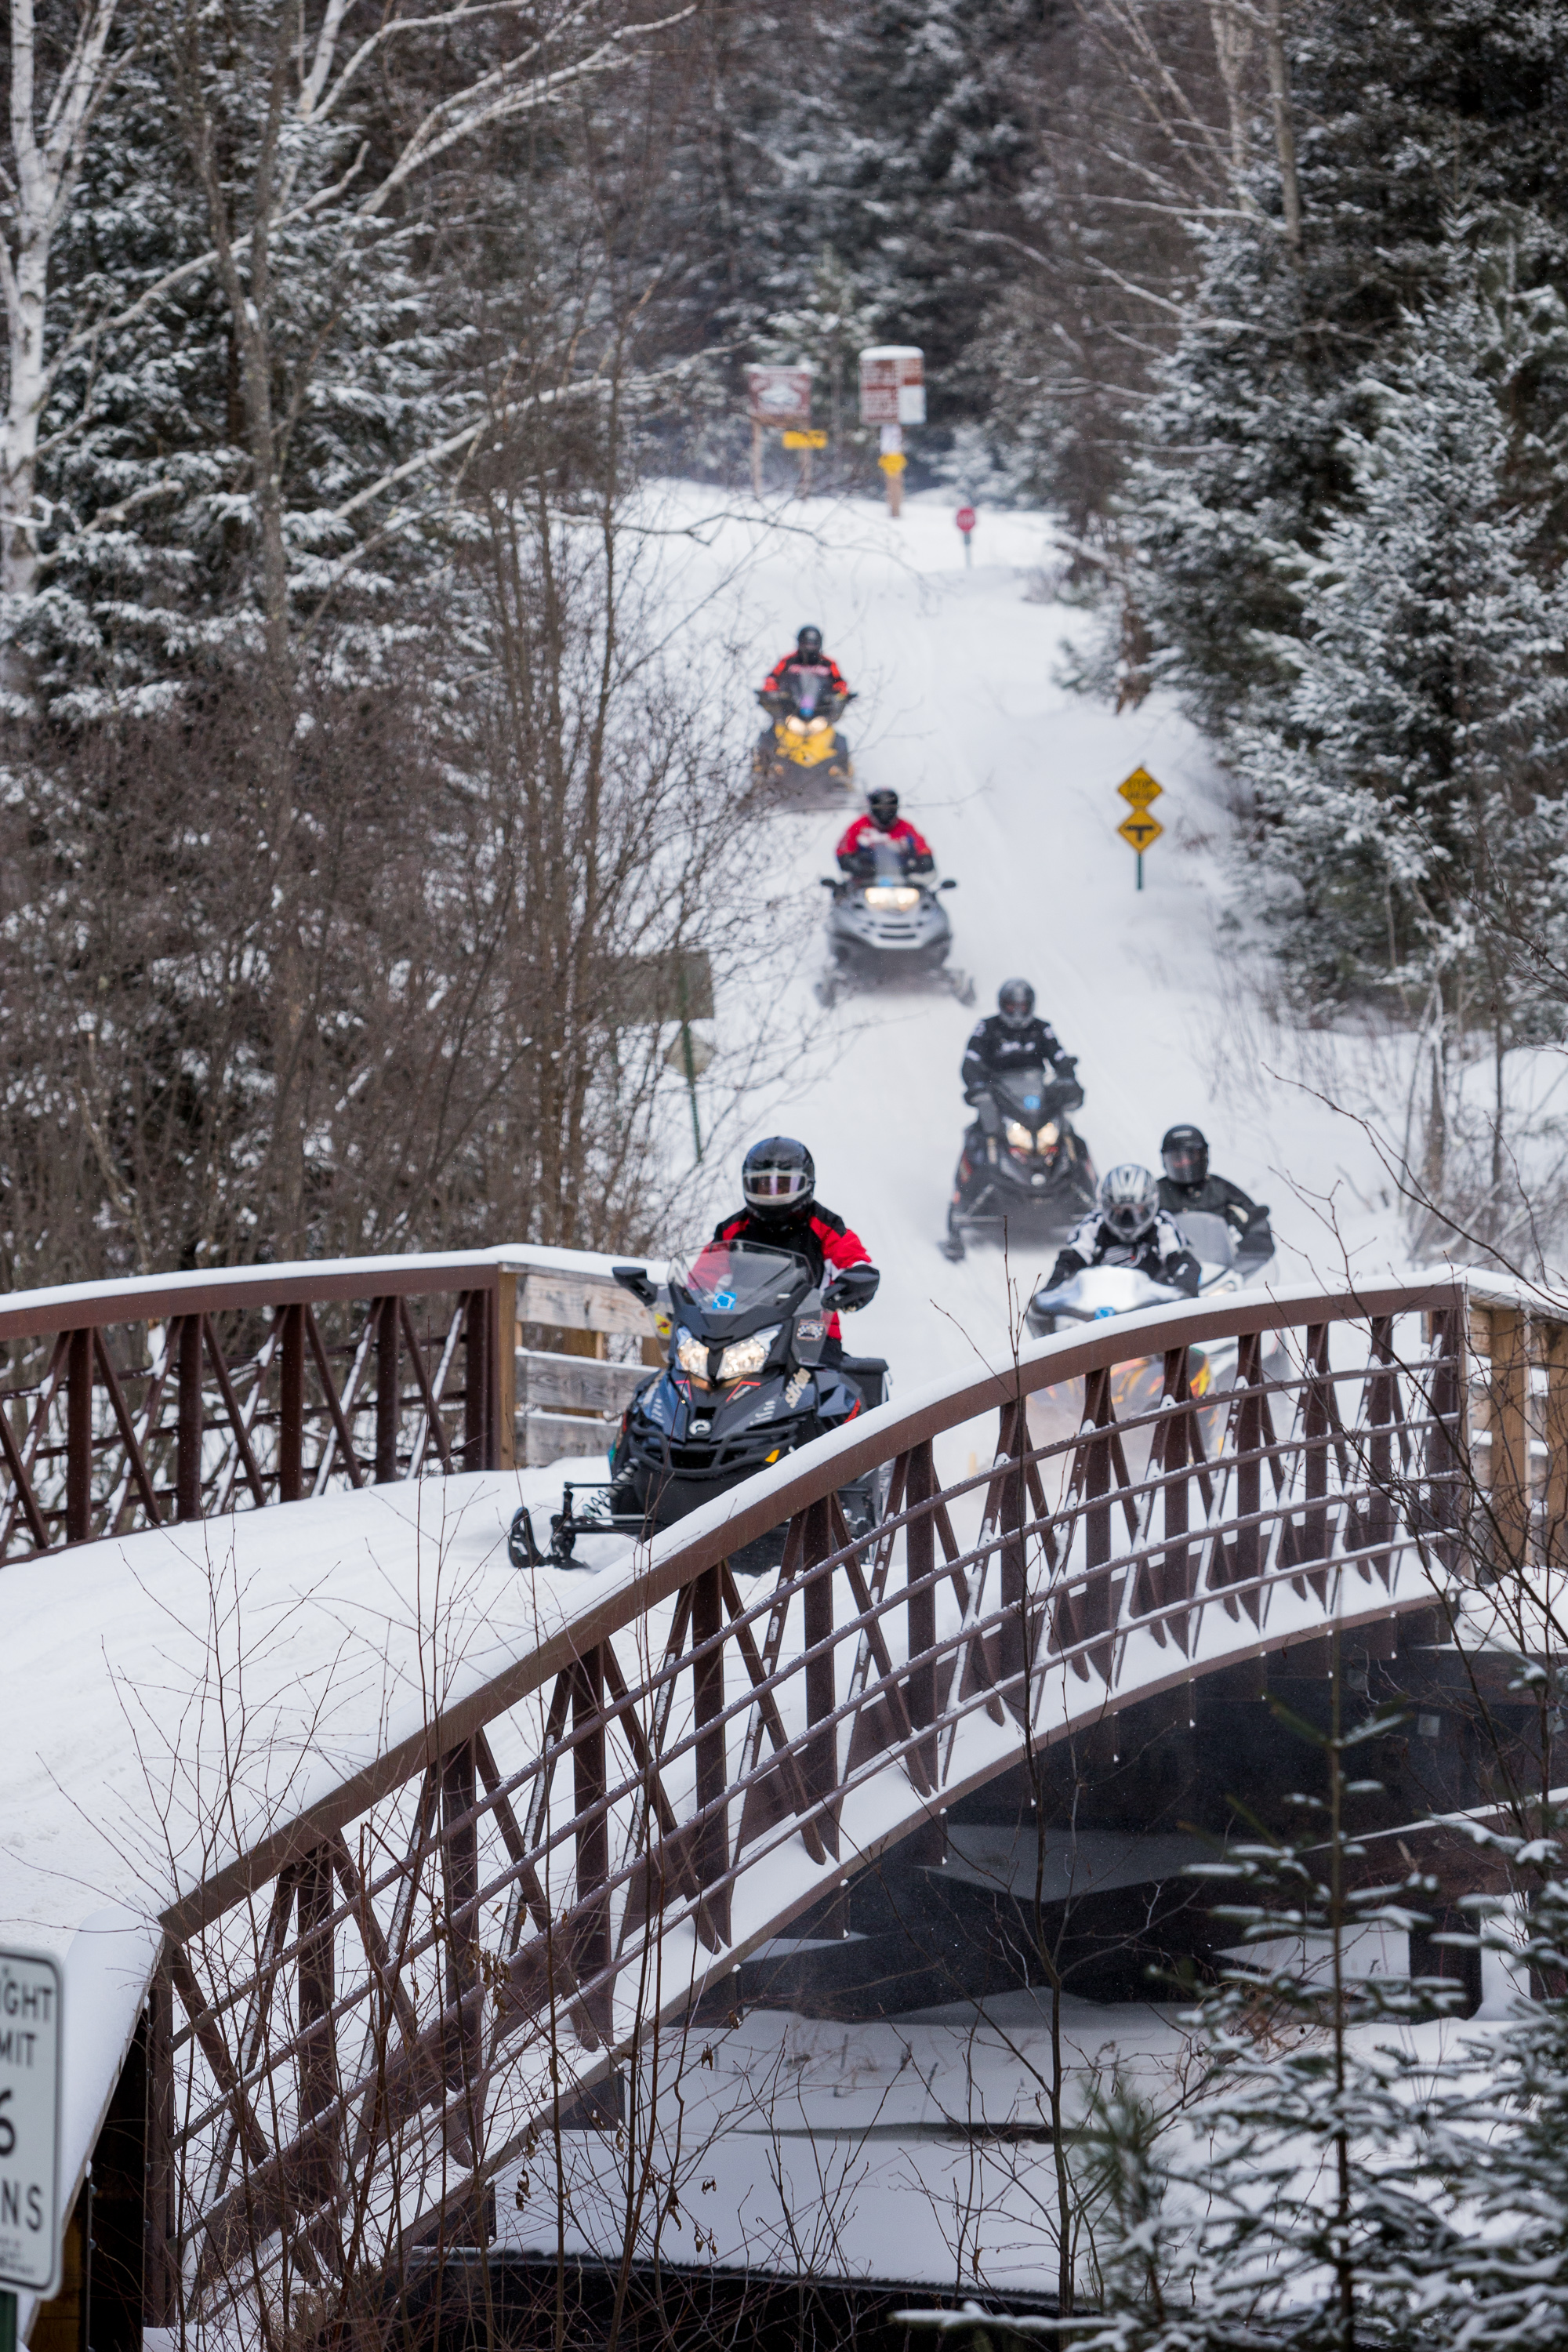 Winter Snow Brings Snowmobilers To Eagle River Area